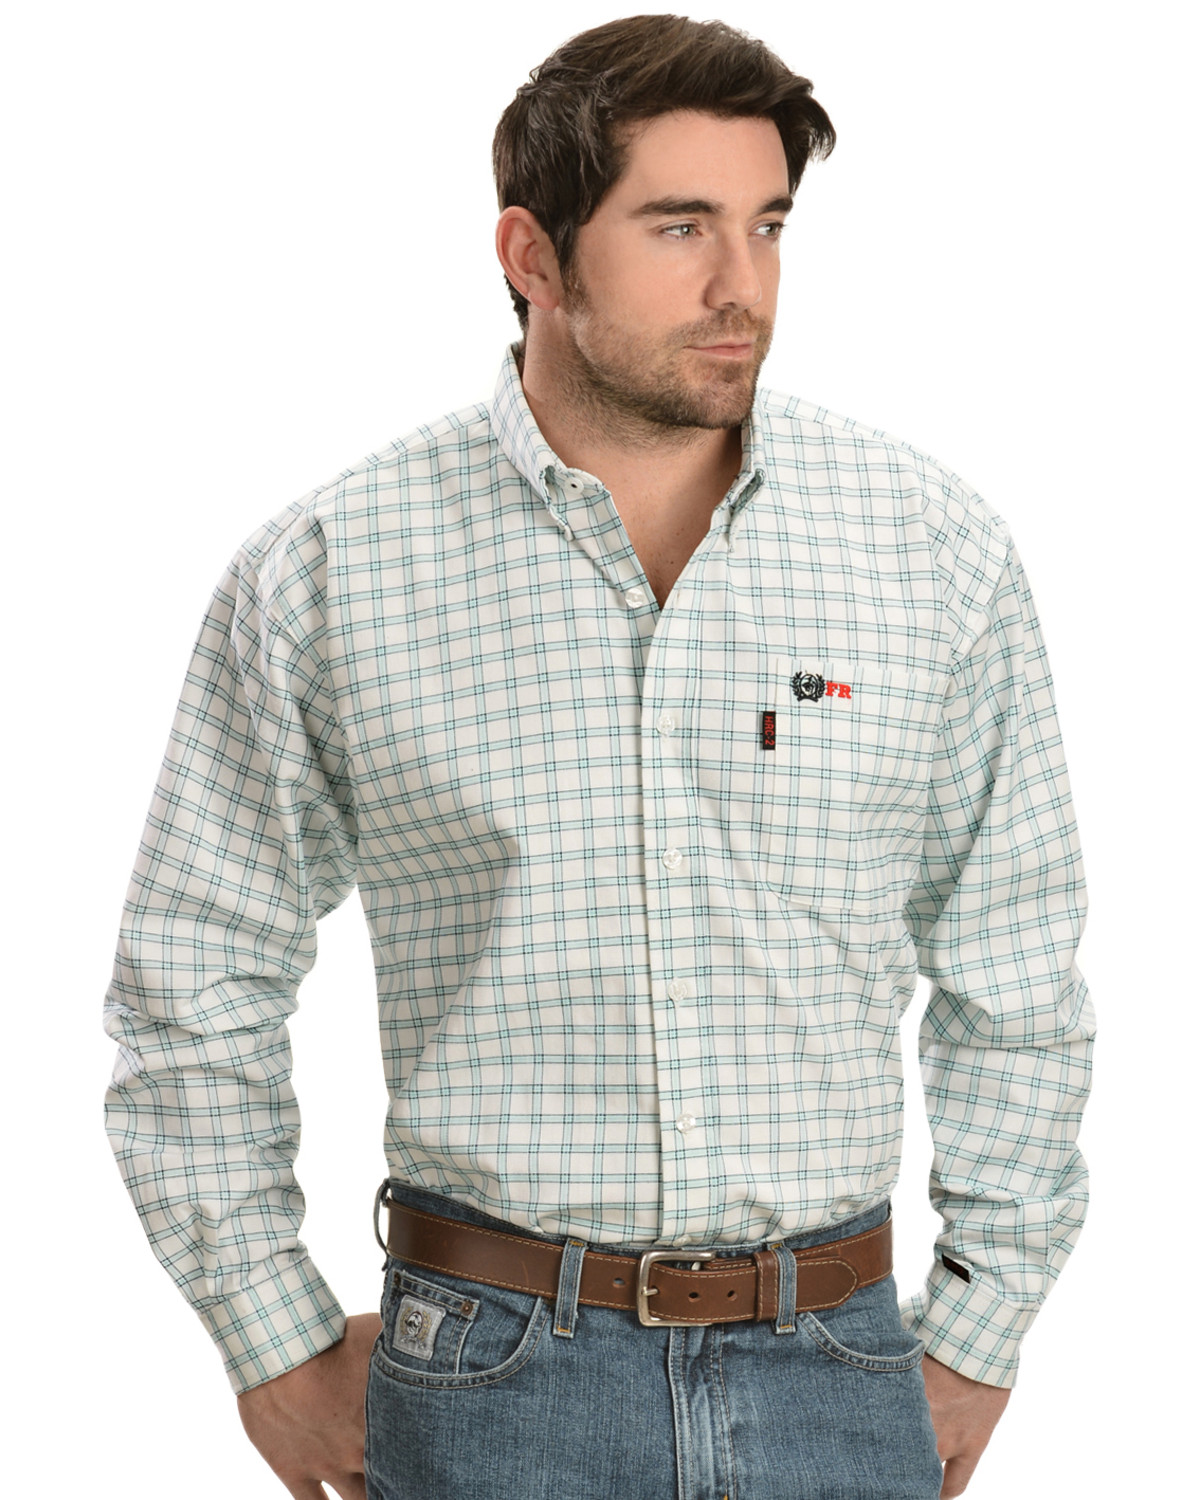 Cinch green and white plaid flame resistant work shirt for Cinch flame resistant shirts